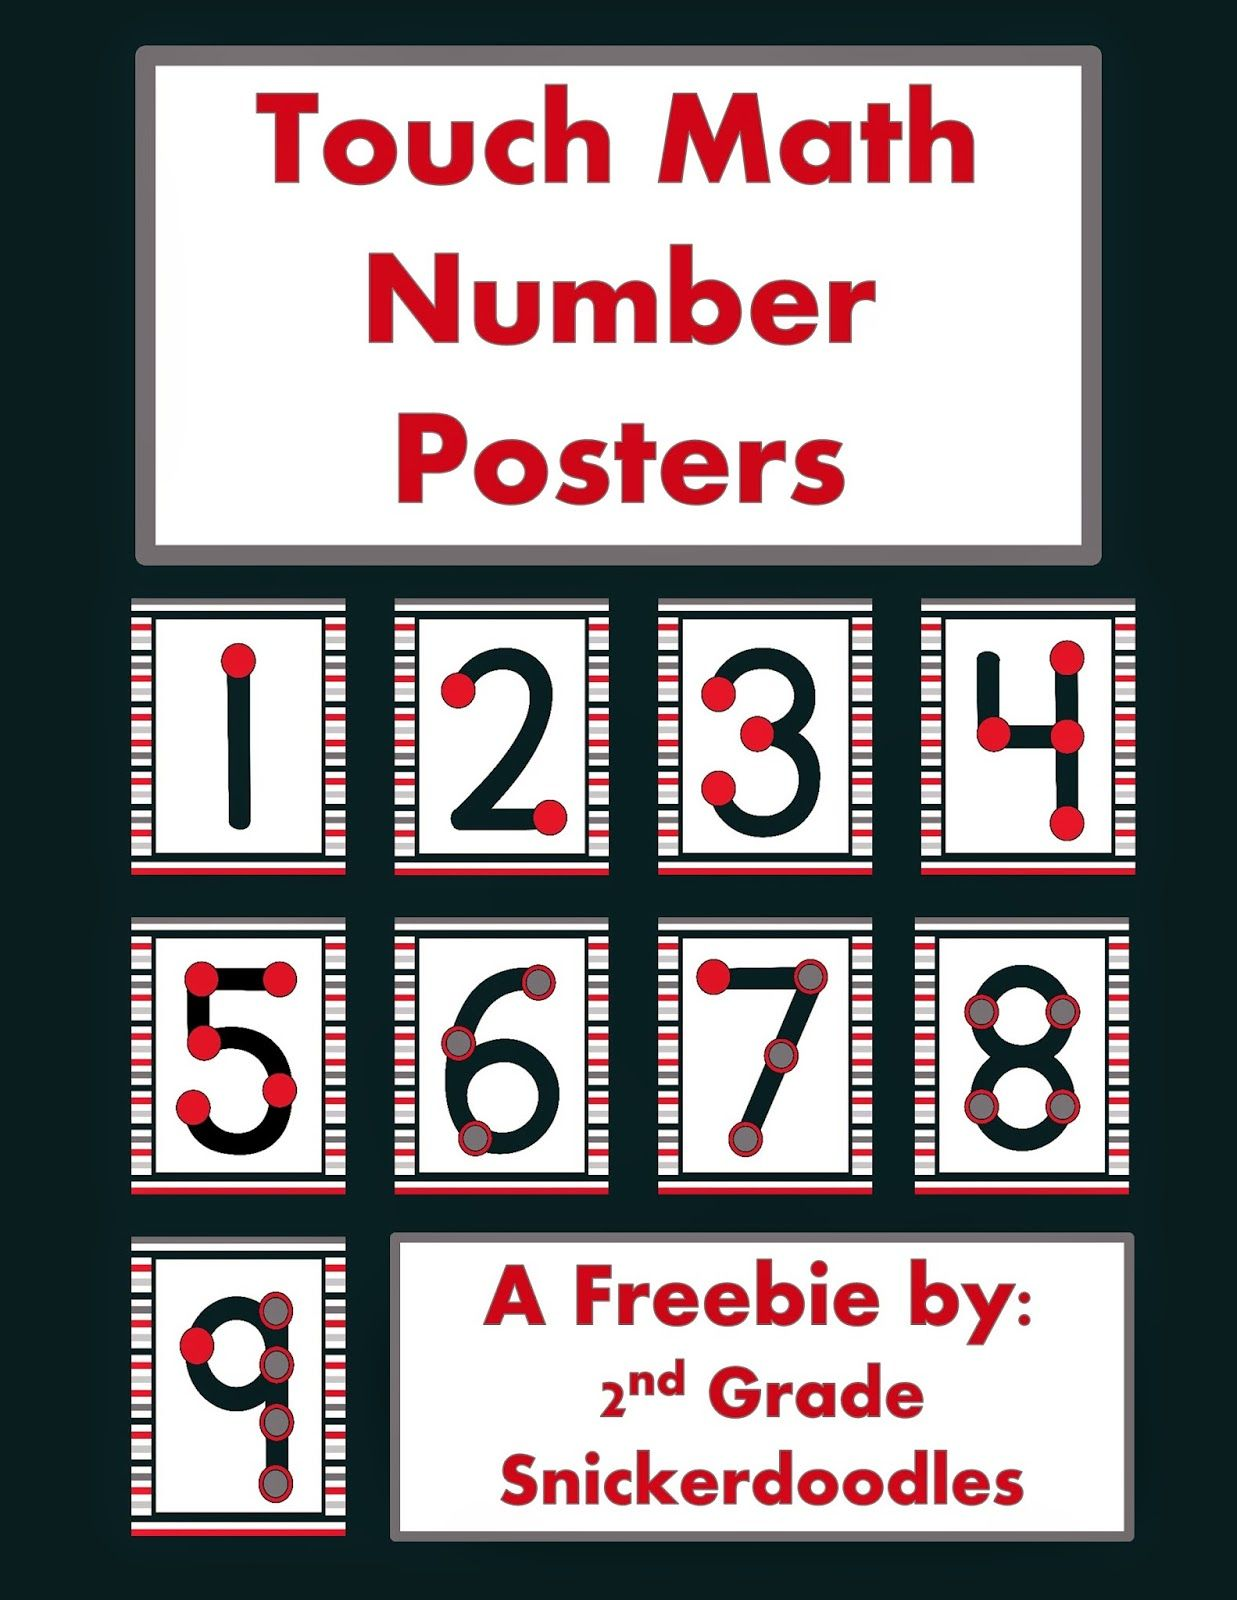 2nd Grade Snickerdoodles Touch Math Number Posters Freebie